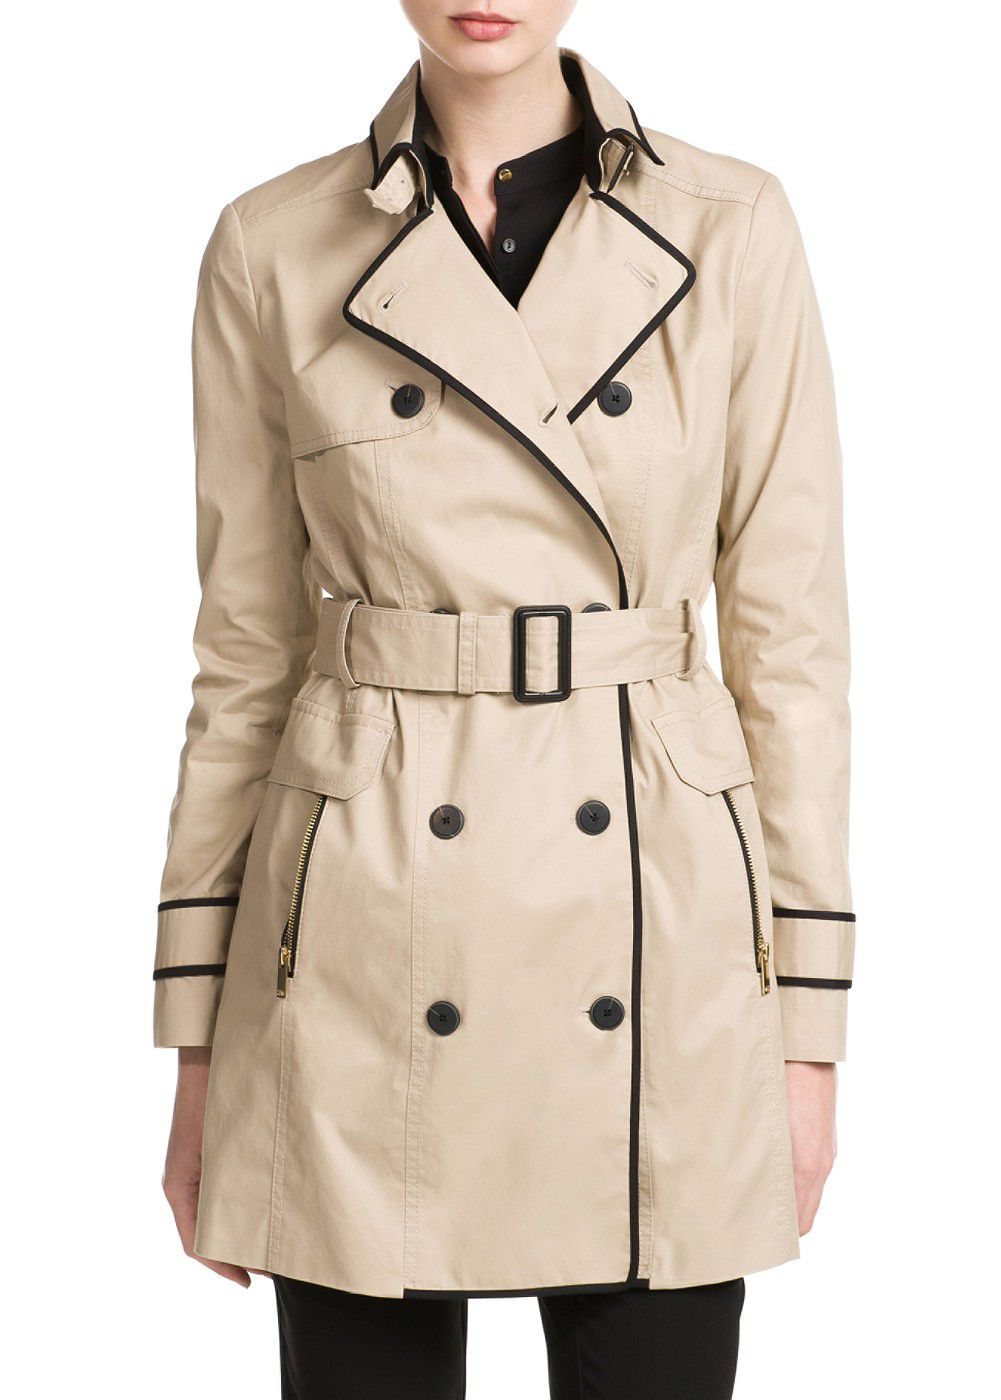 Trim trench coat